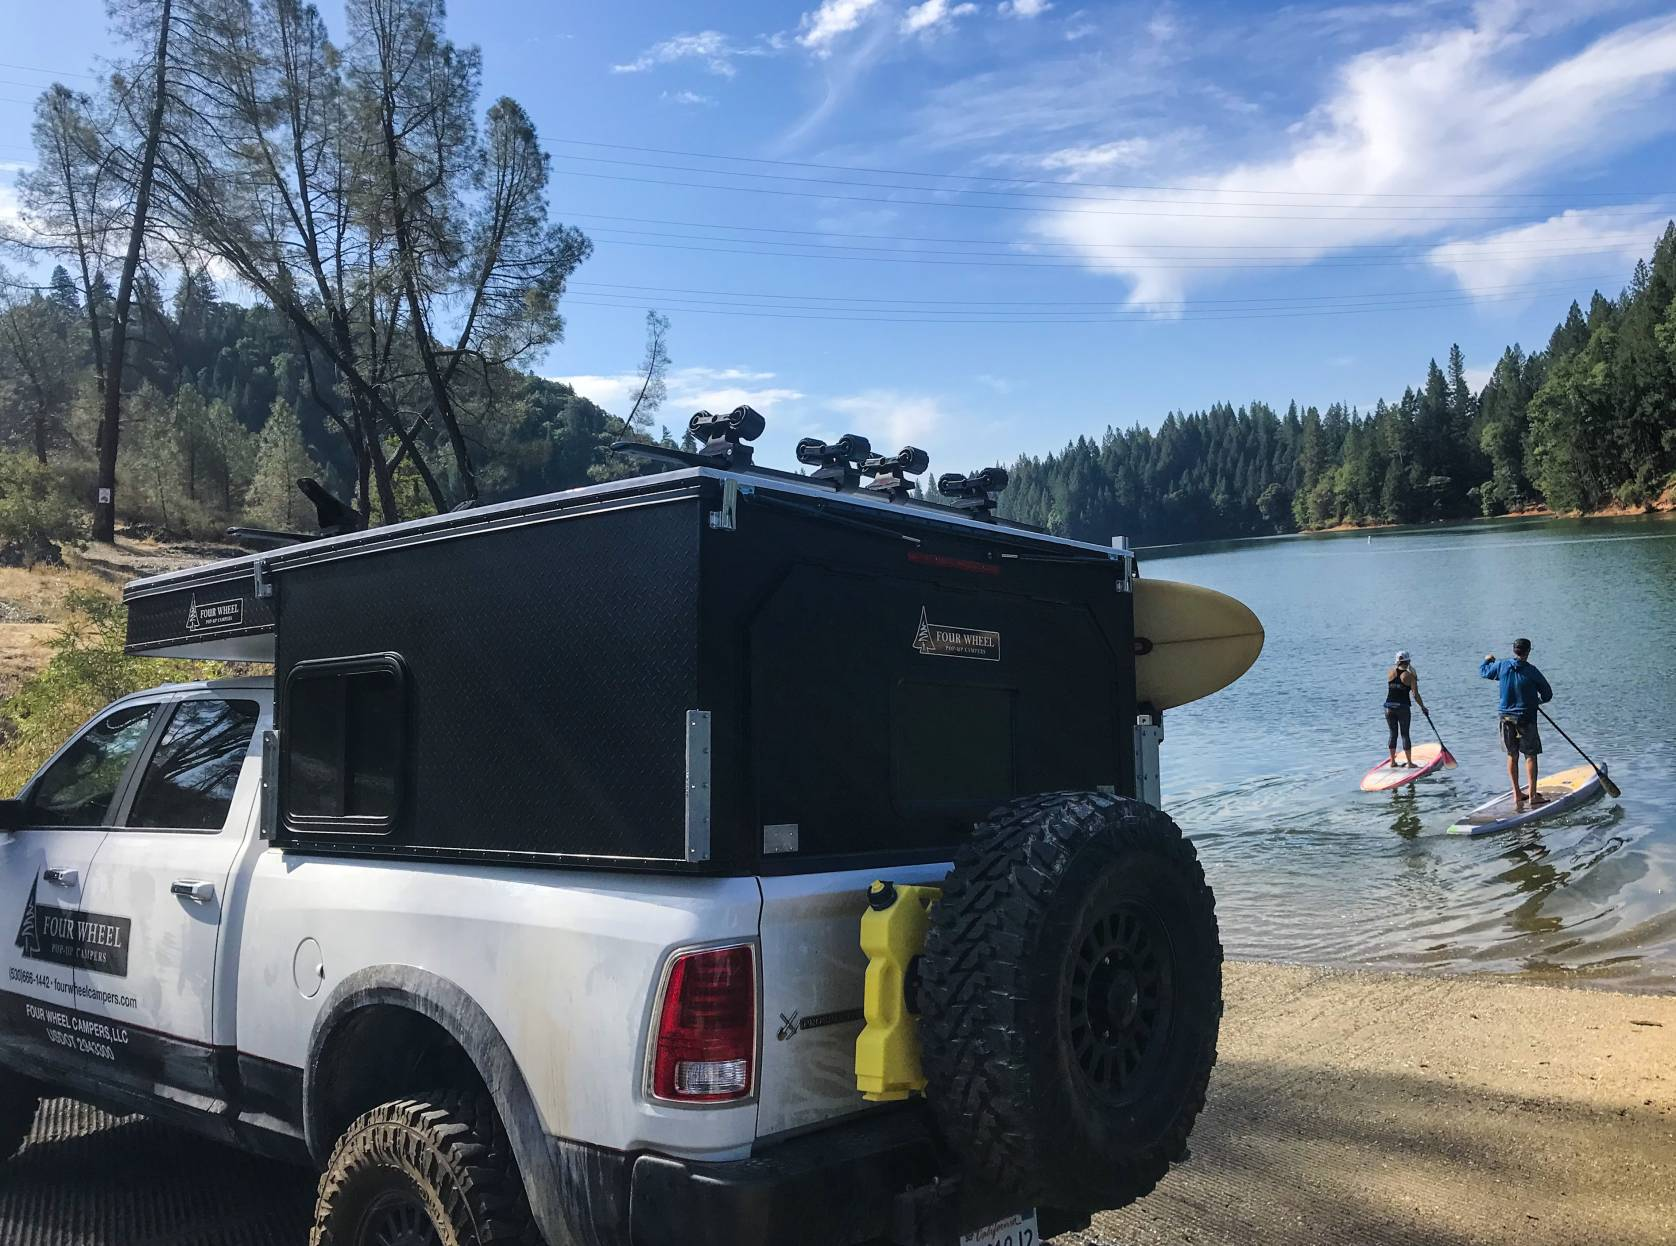 truck parked in front of lake with stand-up paddleboarders in background